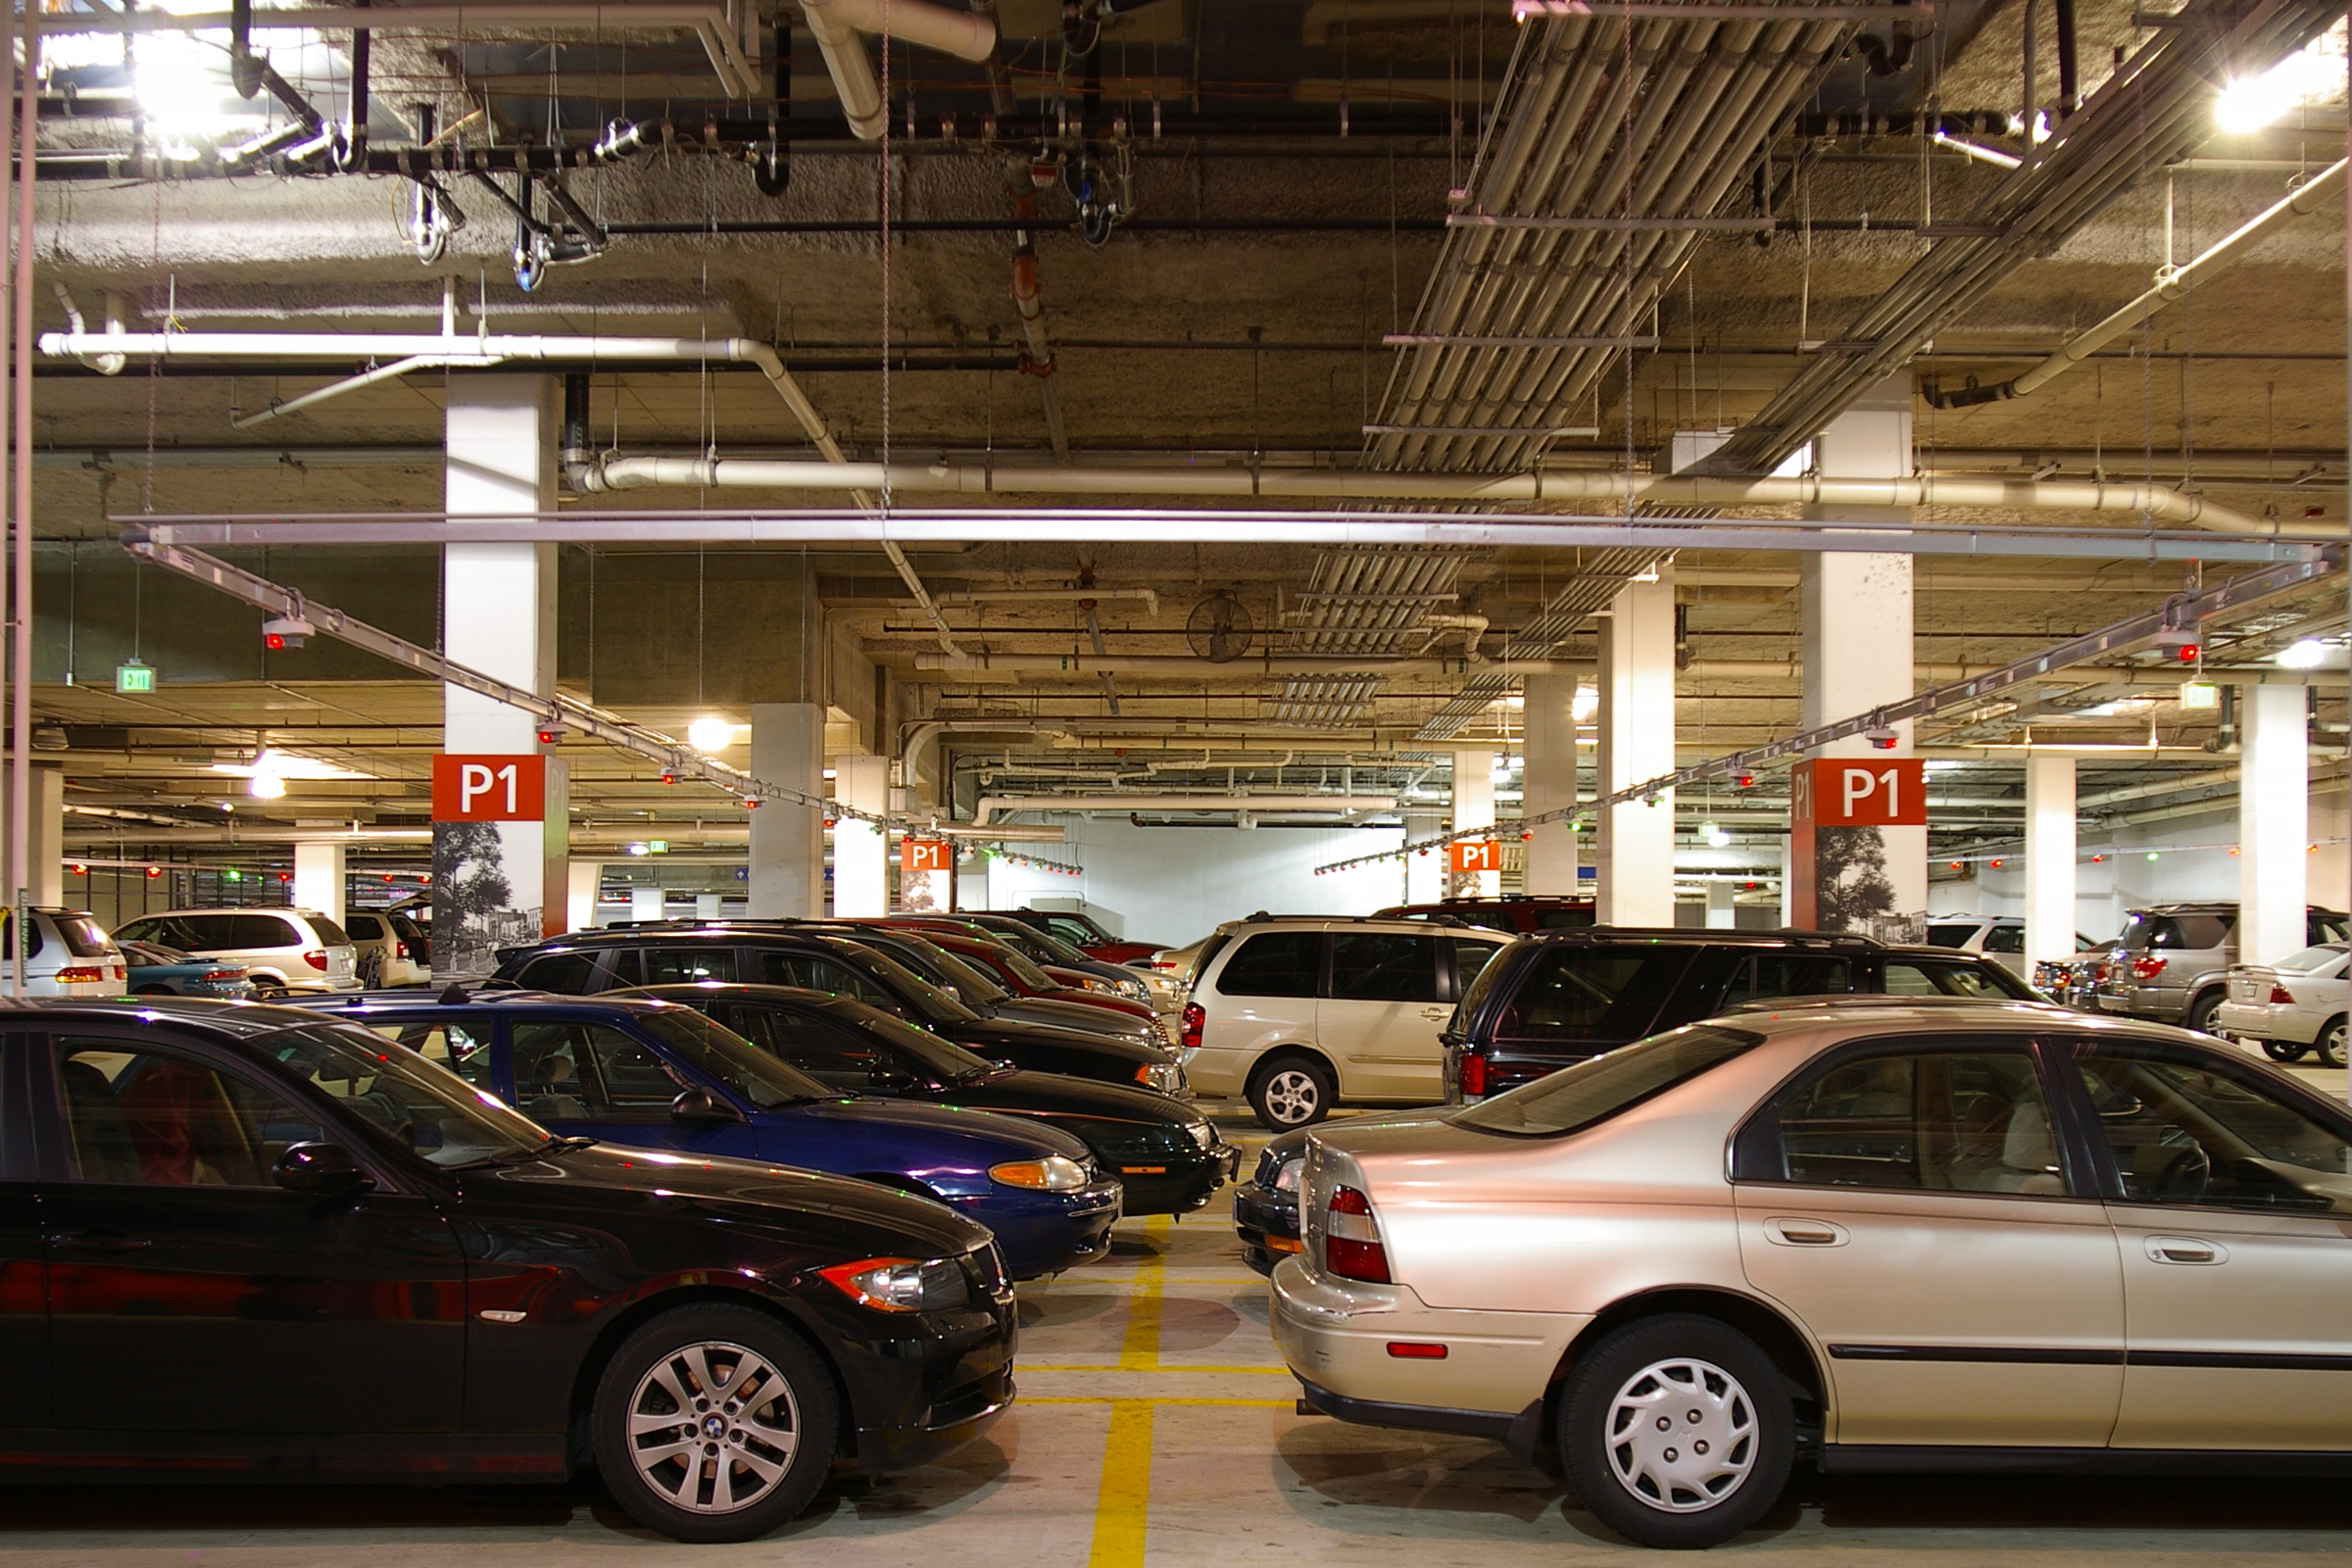 Free parking in town square a new york perspective max for New york city parking garage